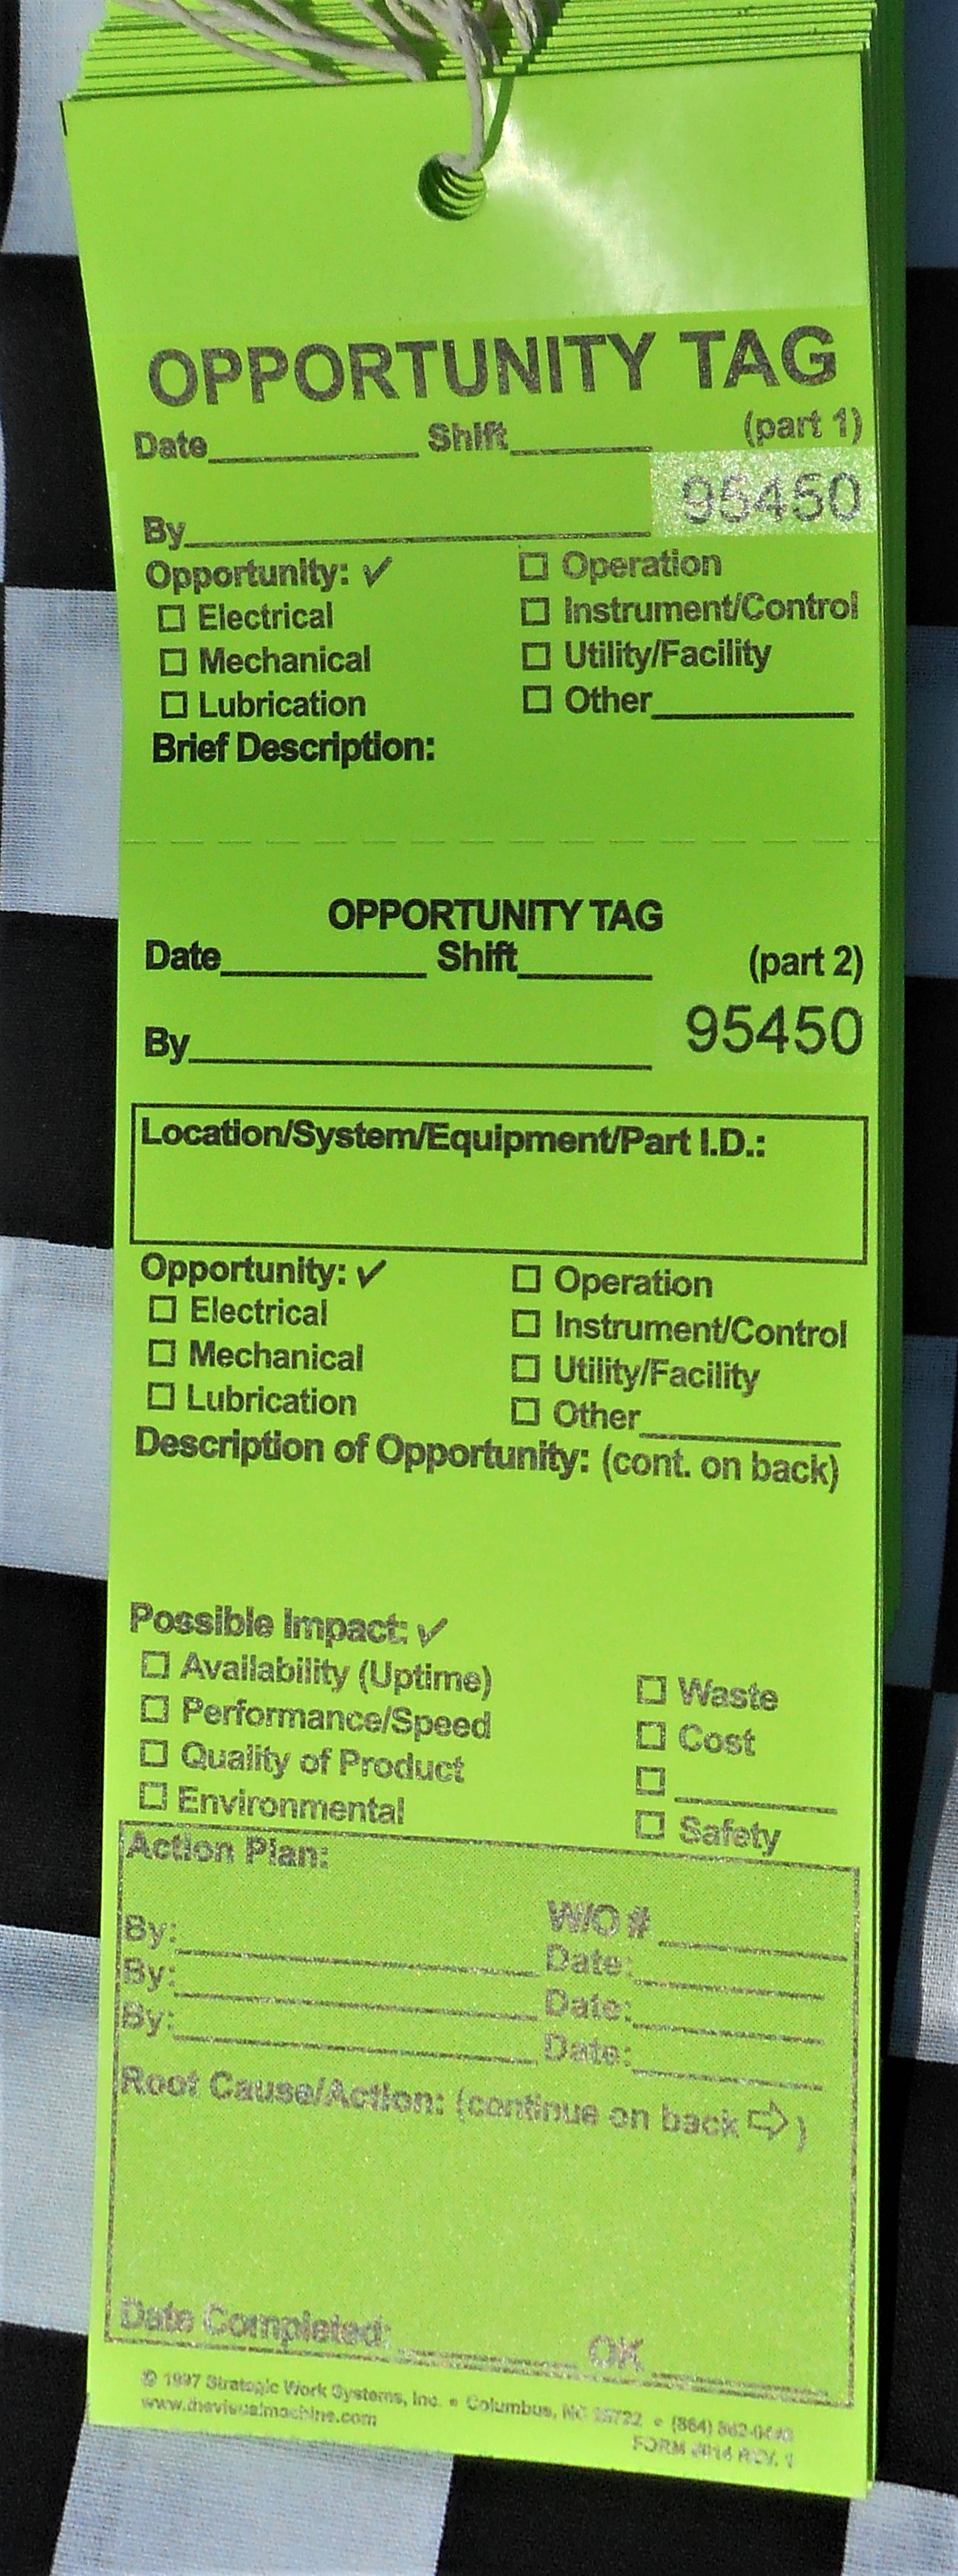 Opportunity Tags in Card Stock (Bundles of 50)